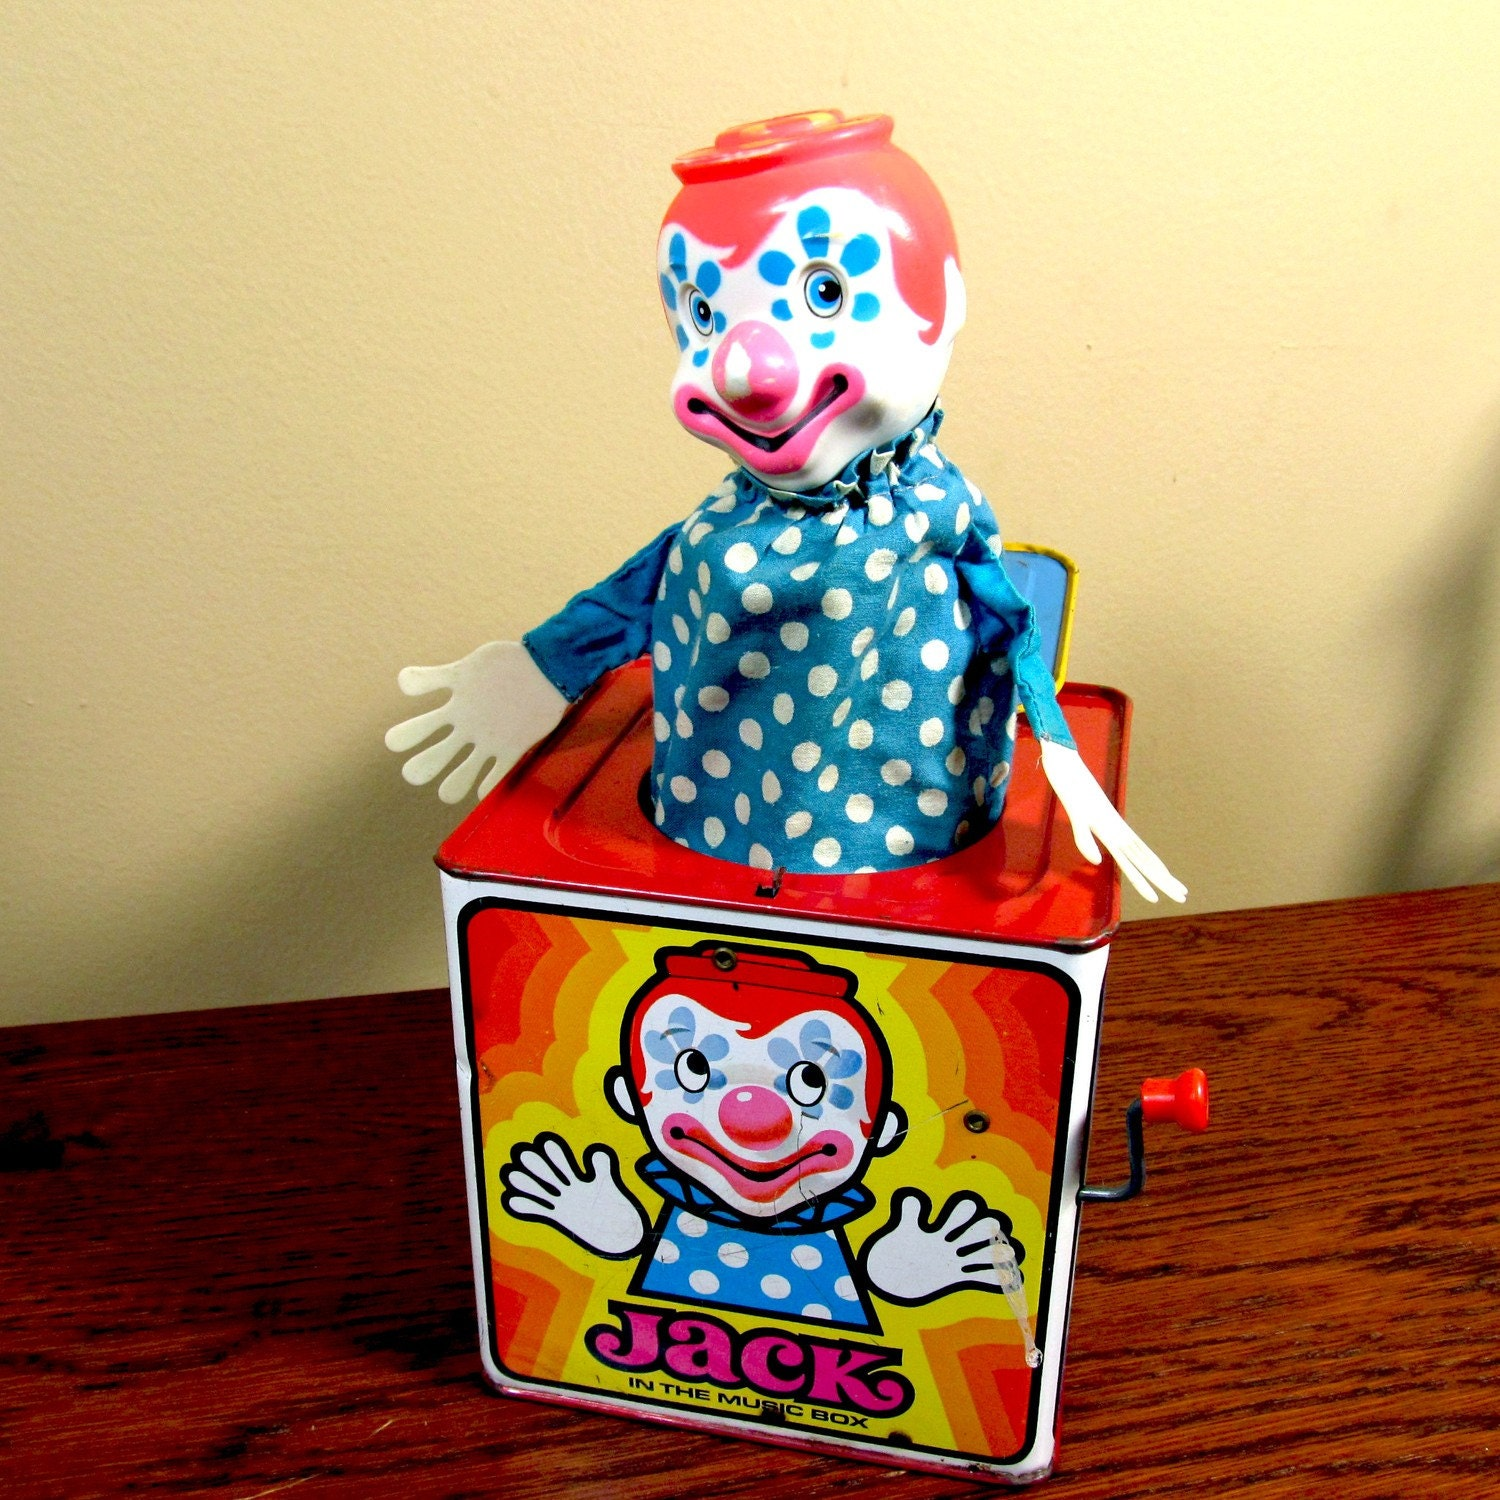 Halloween Jack In The Box Prop.Pneumatic Jack In The Box Halloween Prop Automated Clown Circus